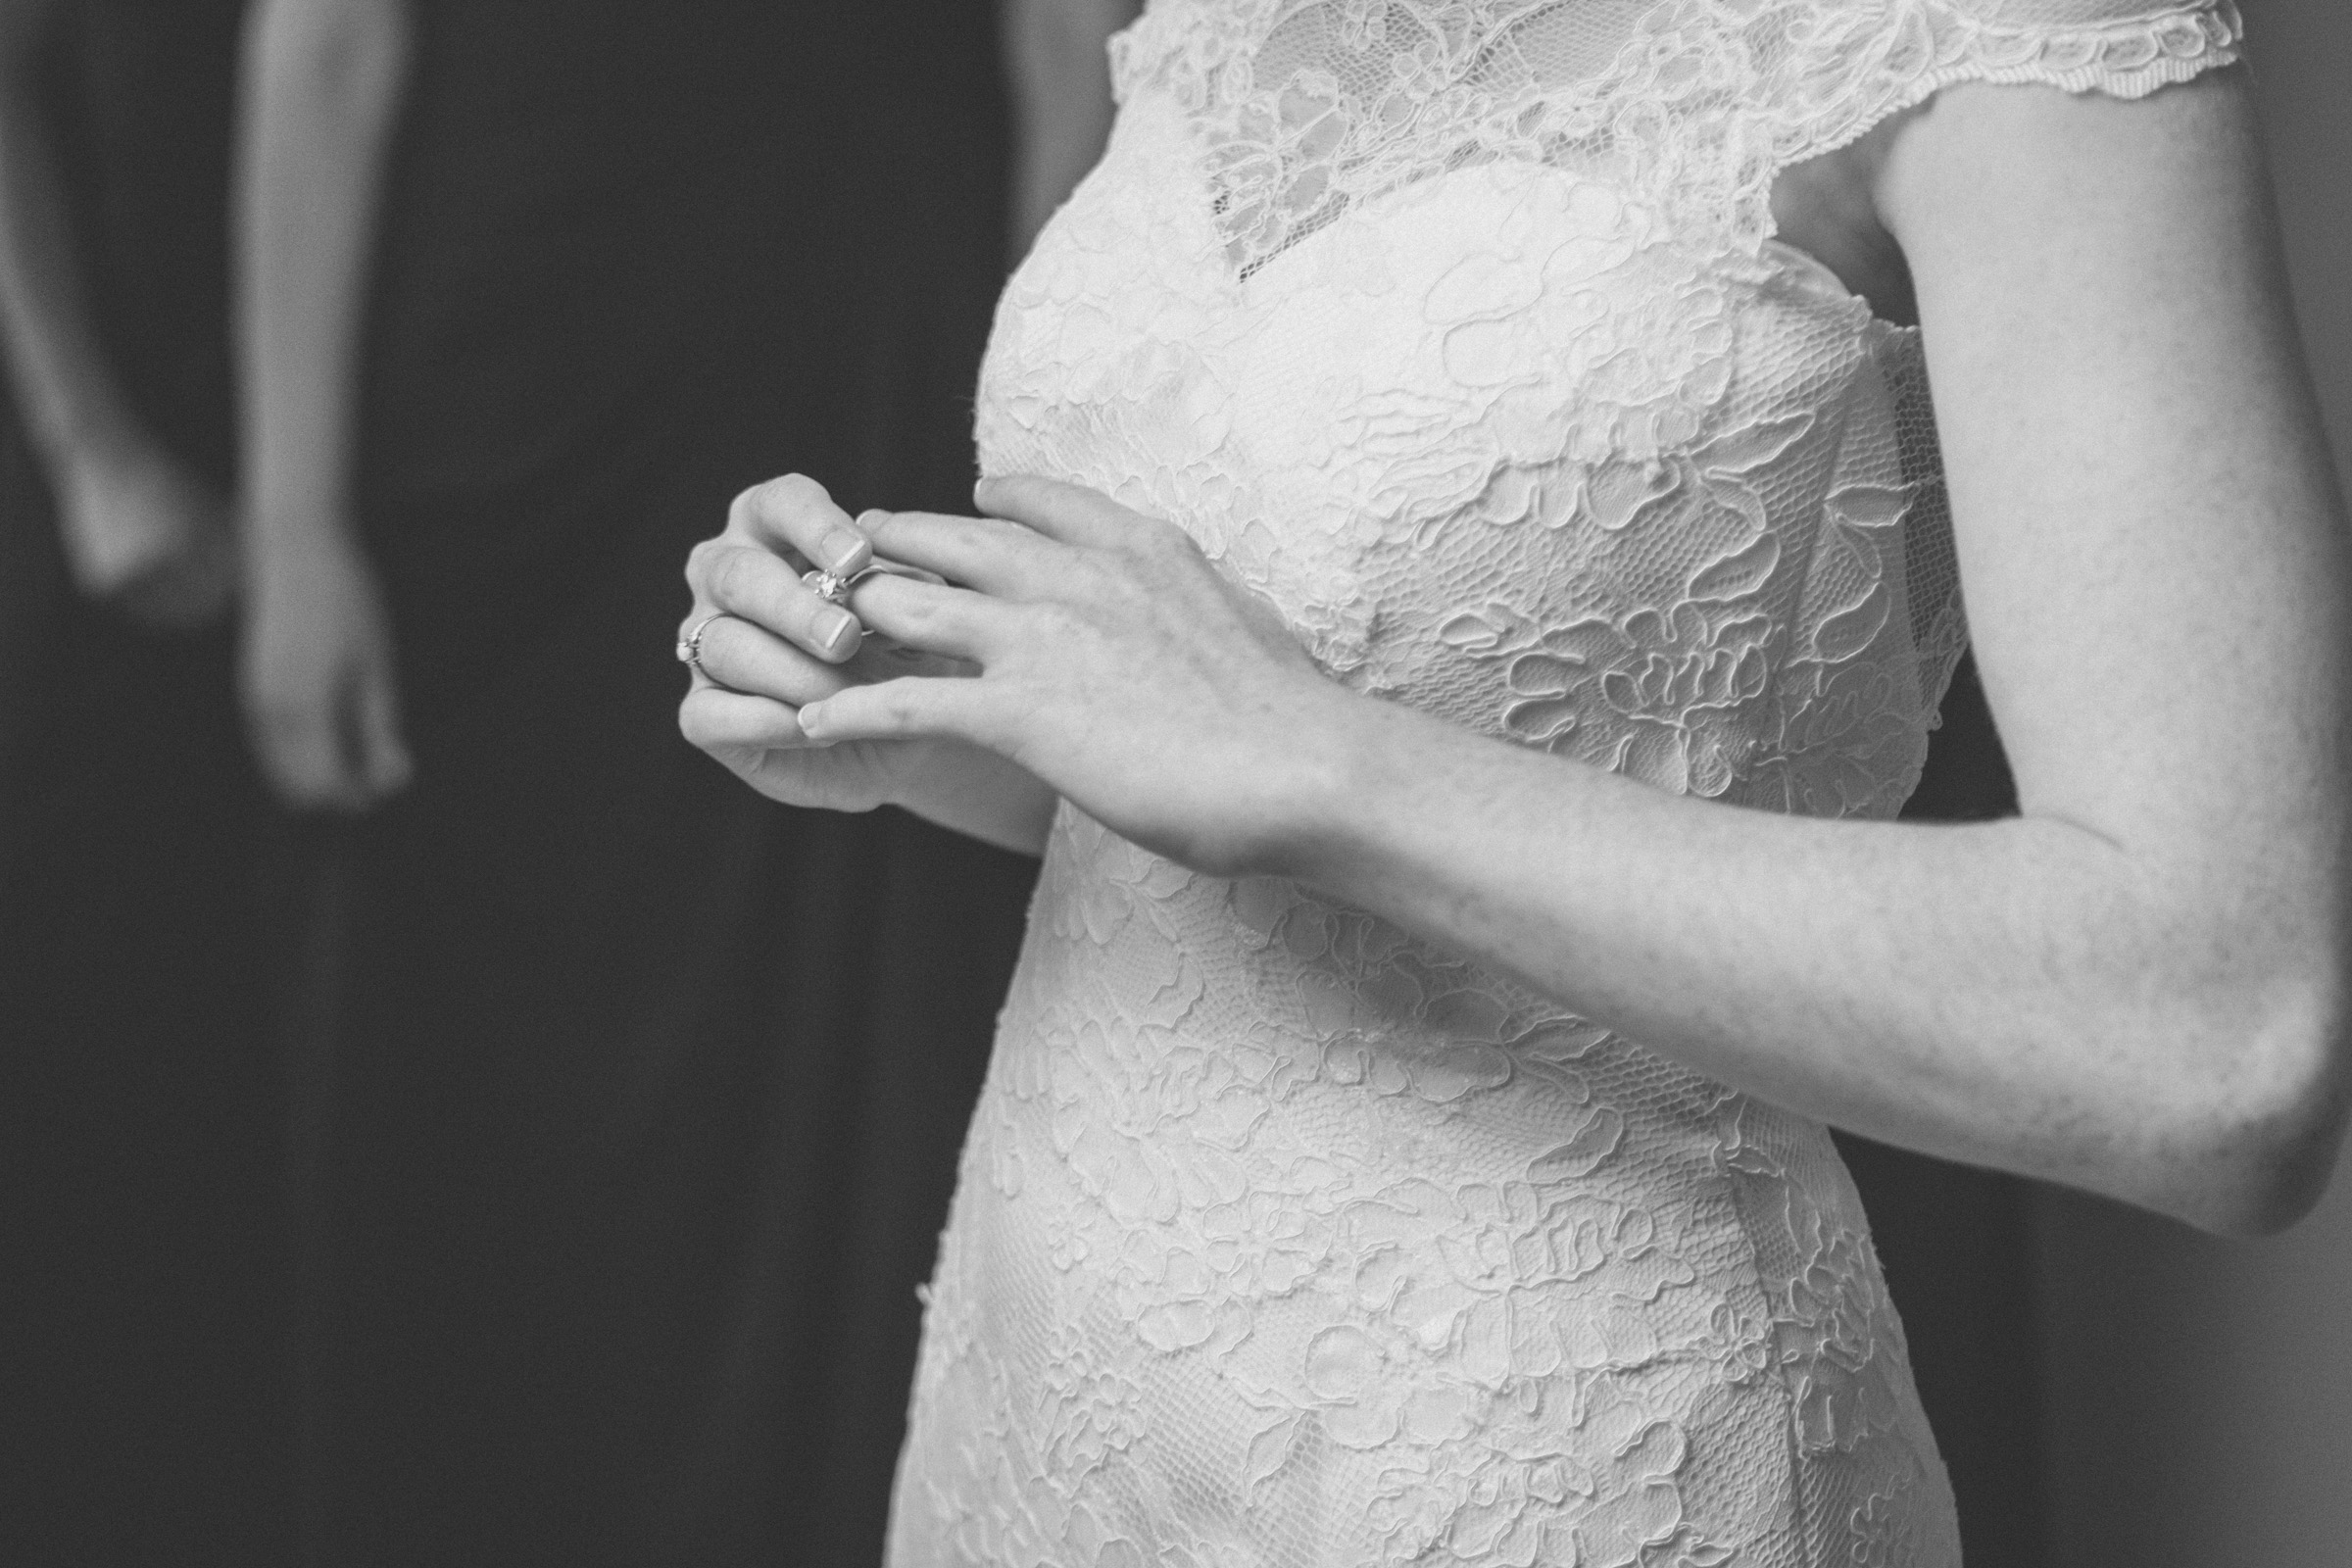 Bride plays with her engagement ring - Estate at Florentine Gardens wedding - Hudson Valley Wedding - Kelsey & Anish's wedding - Amy Sims Photography